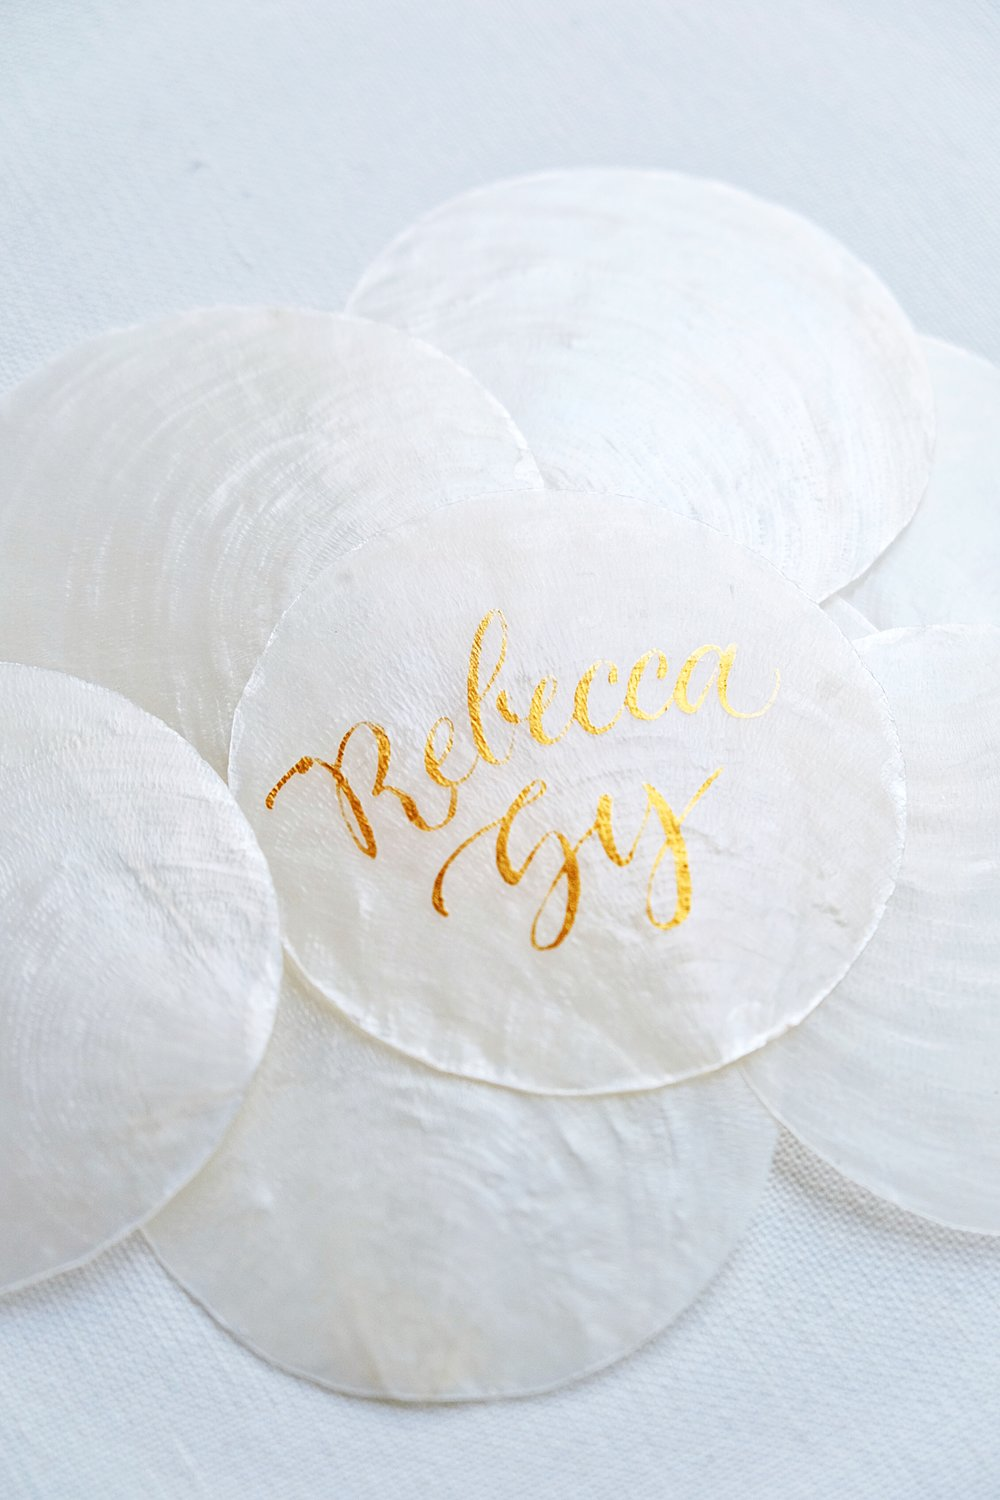 Capiz shell place cards with calligraphy // by Chavelli www.chavelli.com